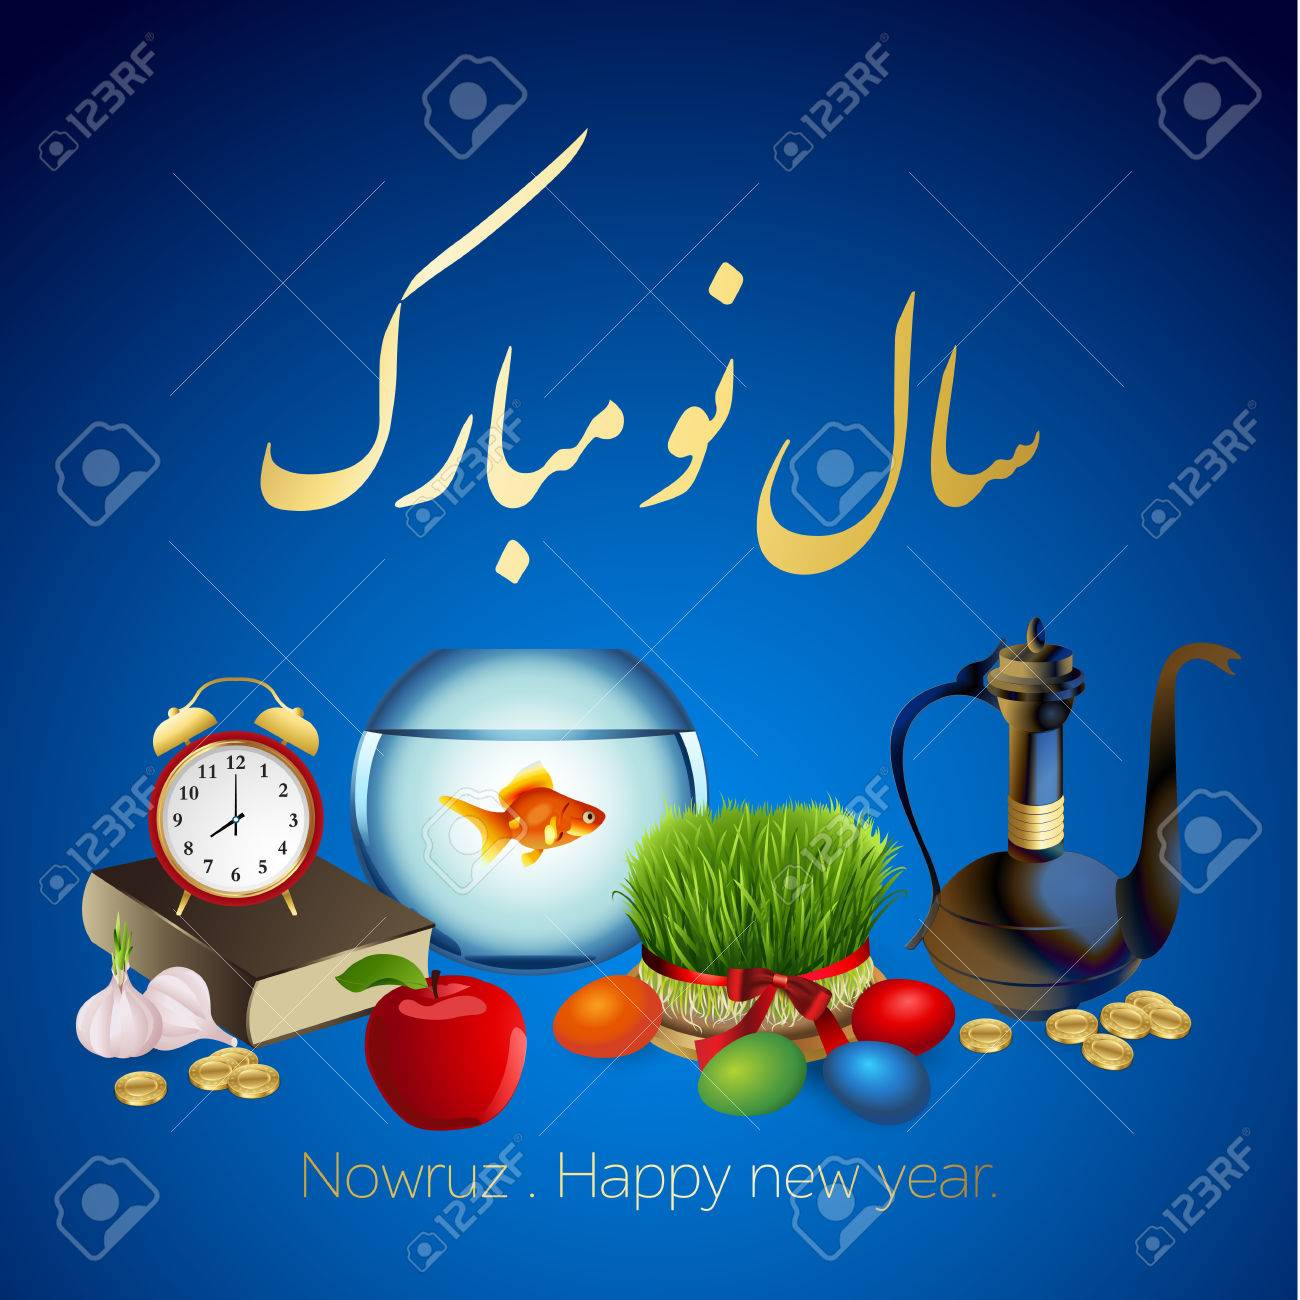 Set for nowruz holiday iranian new year vector illustration iranian new year vector illustration stock vector 71181248 kristyandbryce Gallery